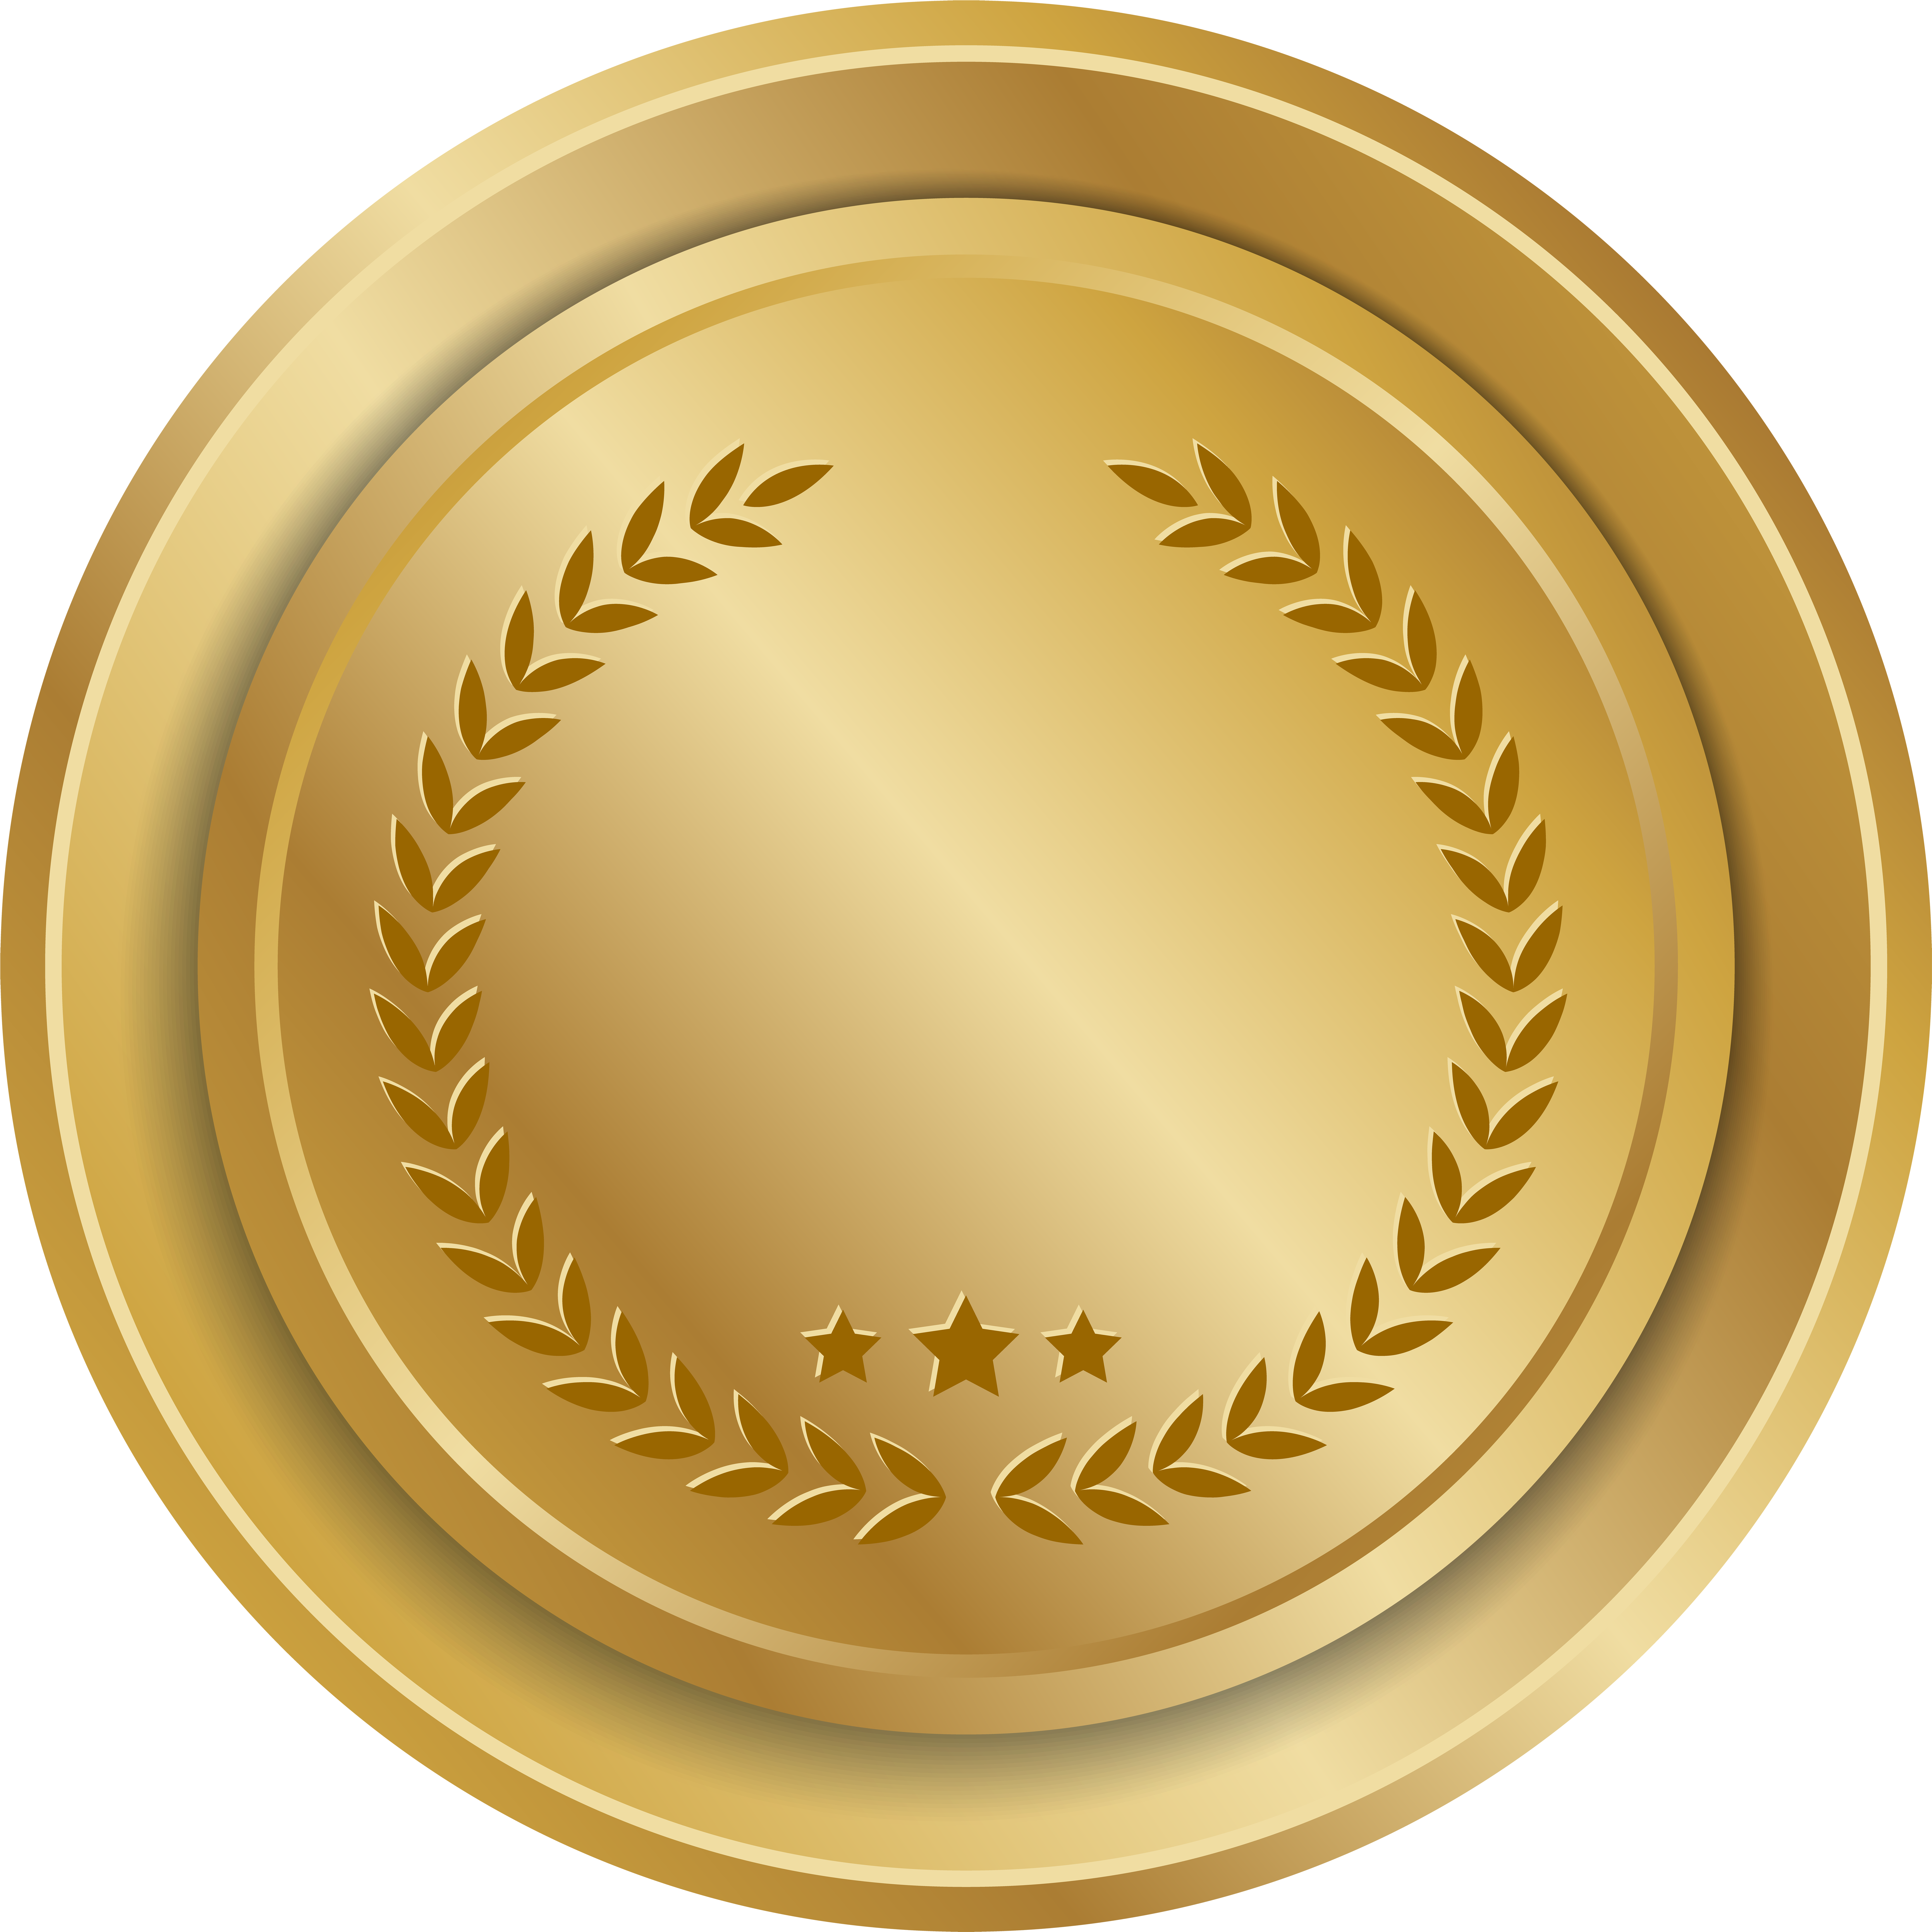 Gold plate png. Download hd transparent image